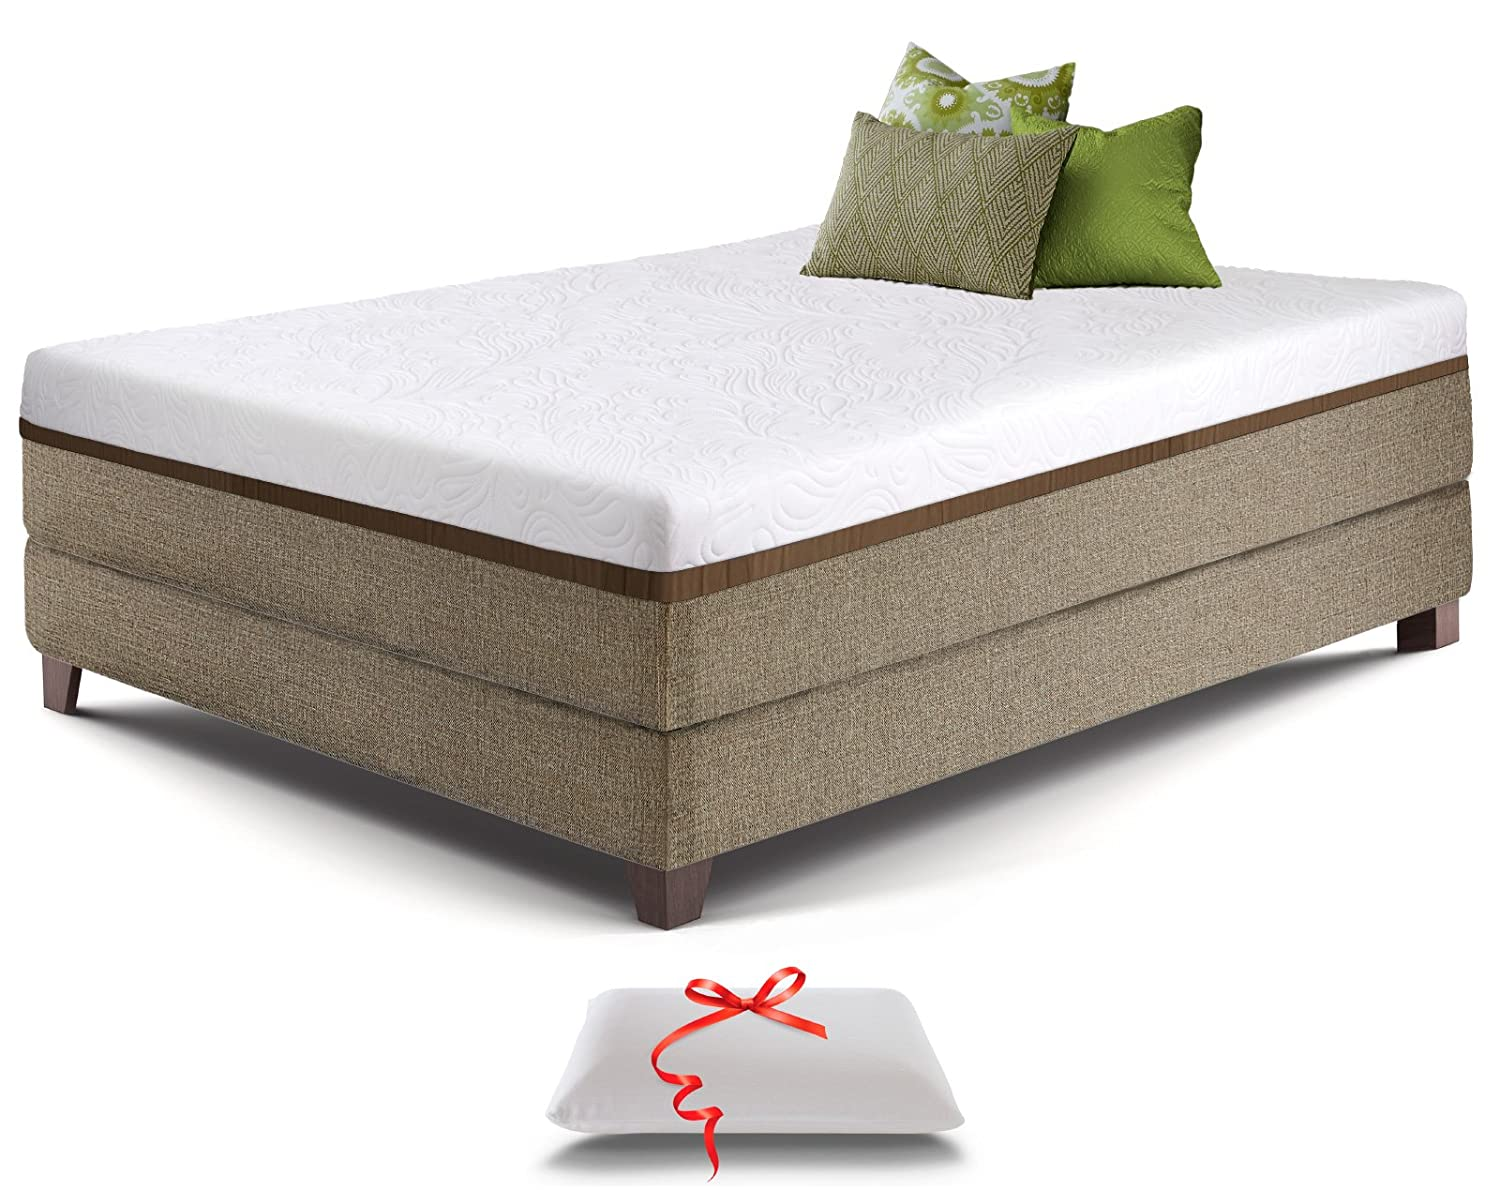 Amazon Com Full Gel Memory Foam Mattress Bonus Memory Foam Pillow